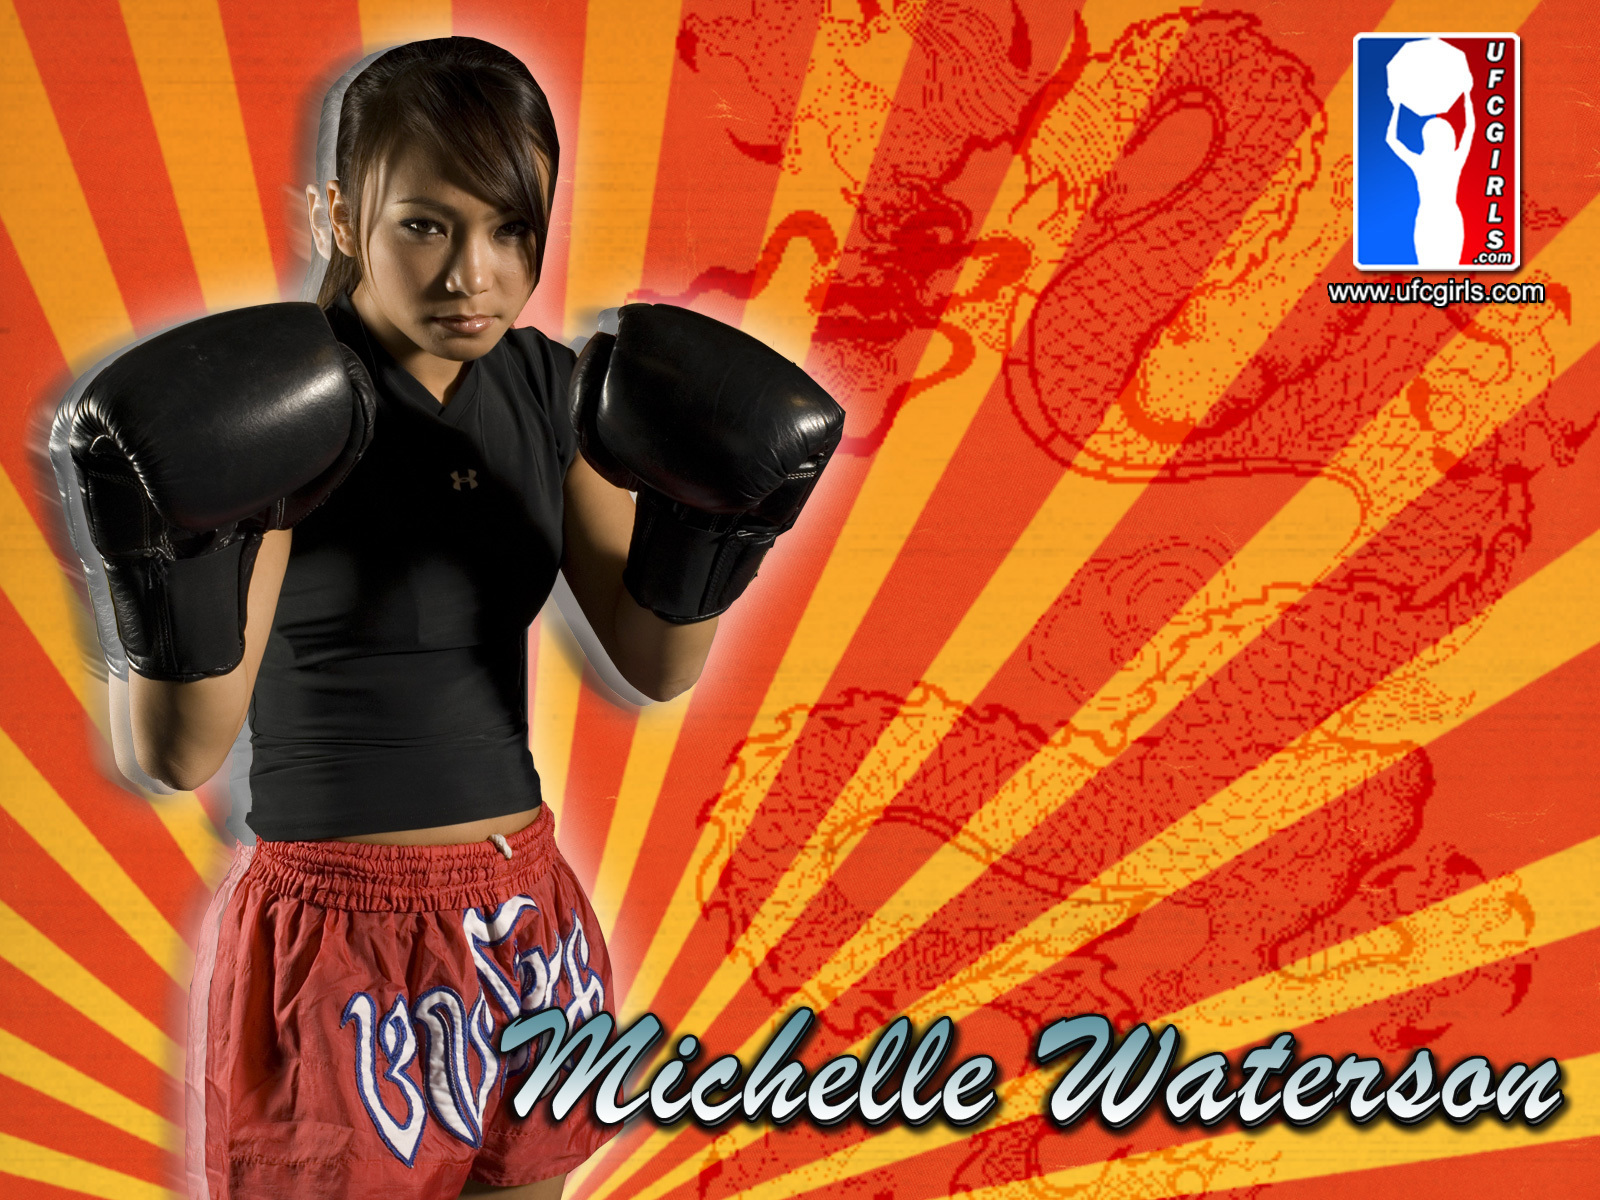 michelle waterson mixed Martial HD Wallpaper